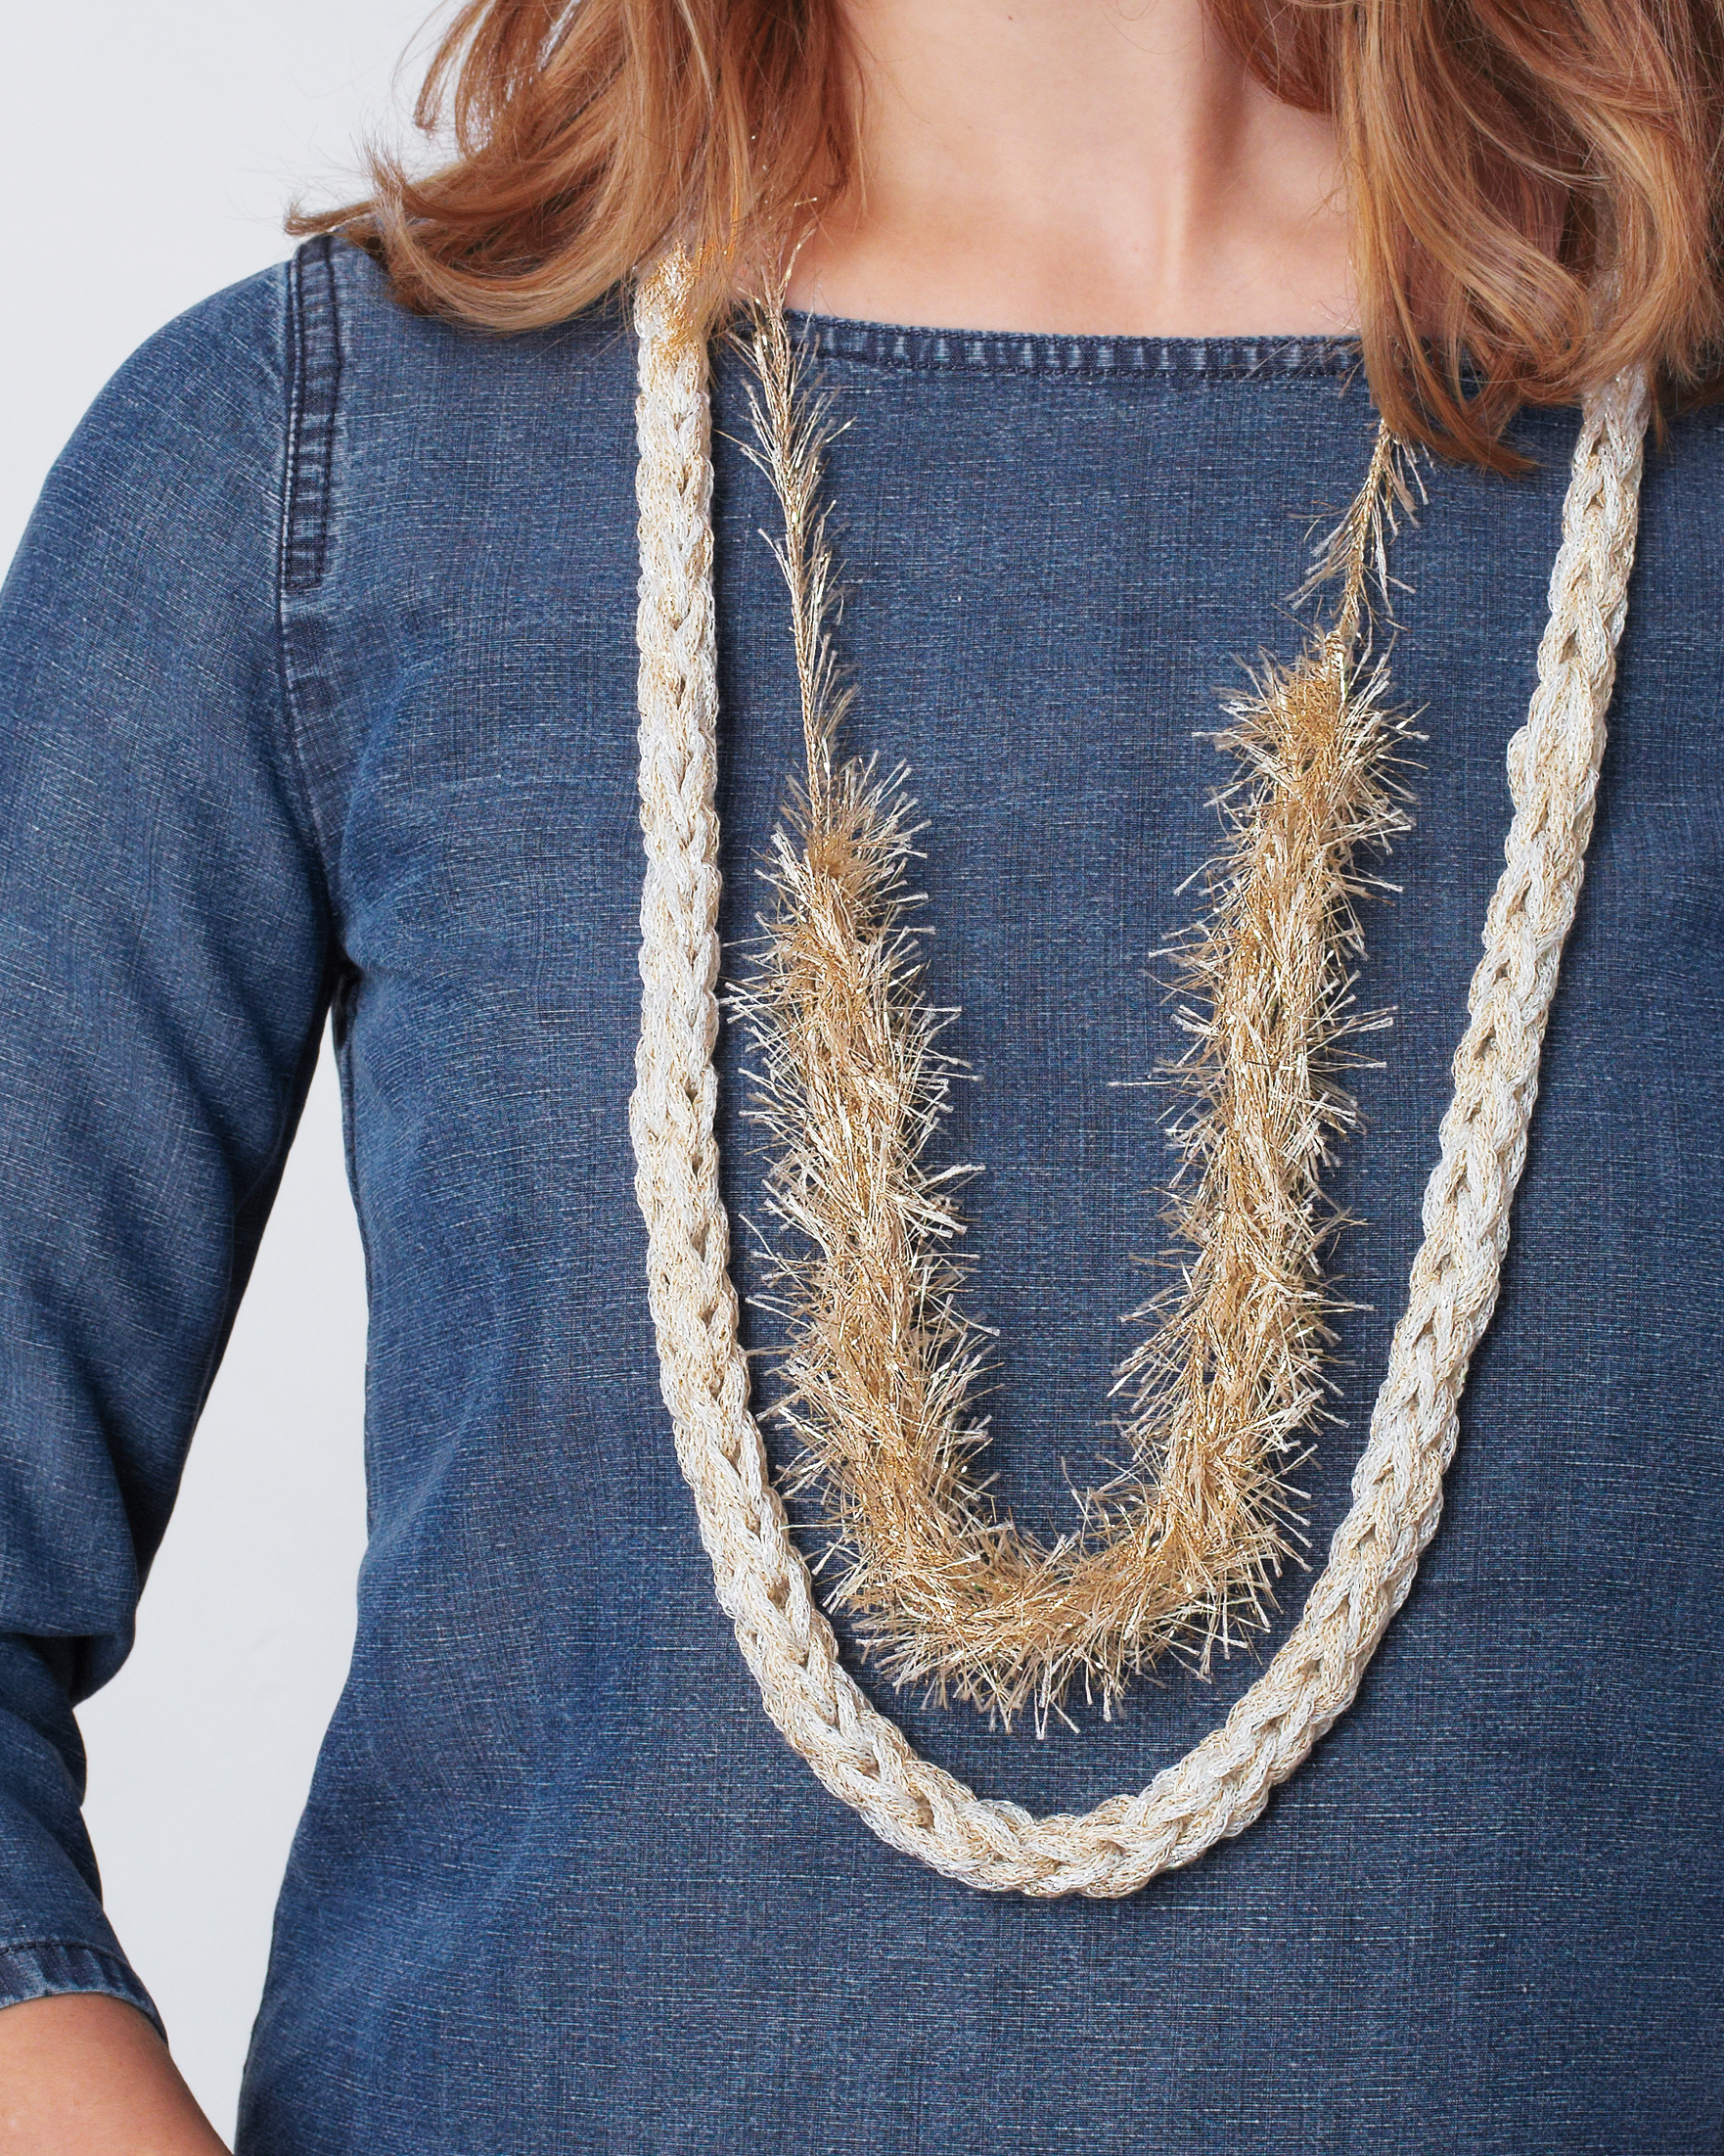 finger-knit-necklace-129-md110635.jpg